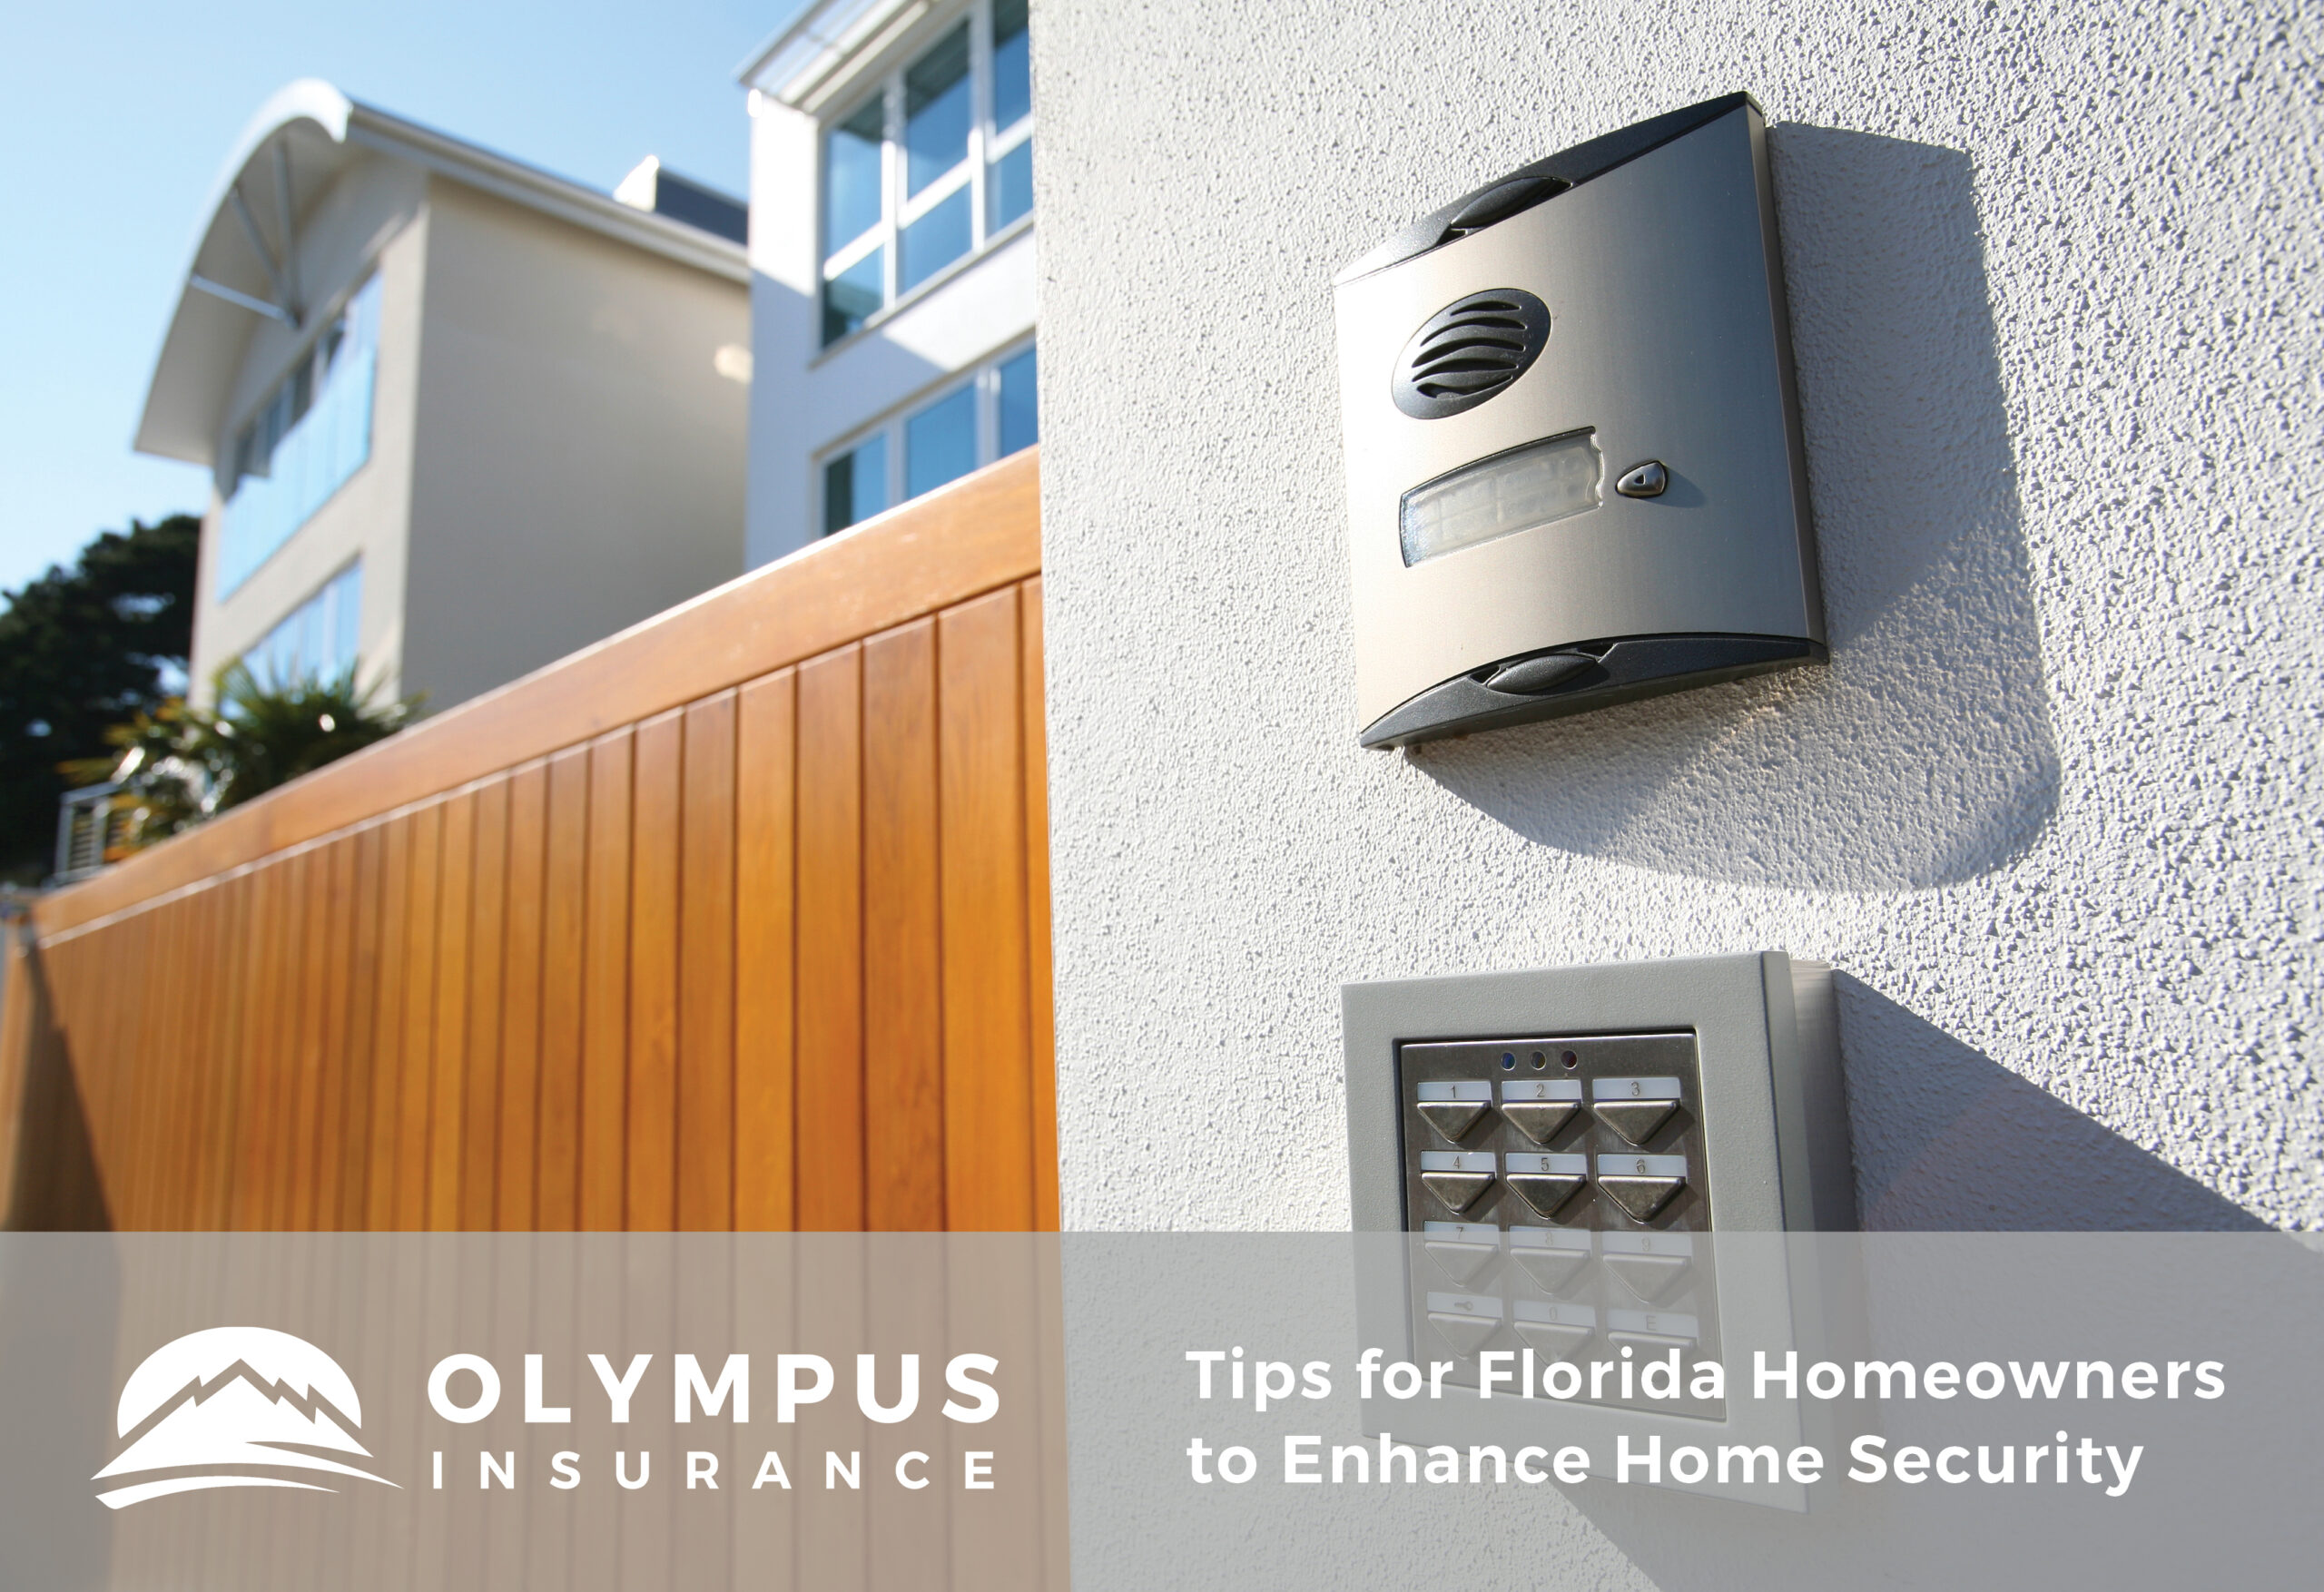 Tips for Florida Homeowners to Enhance Home Security